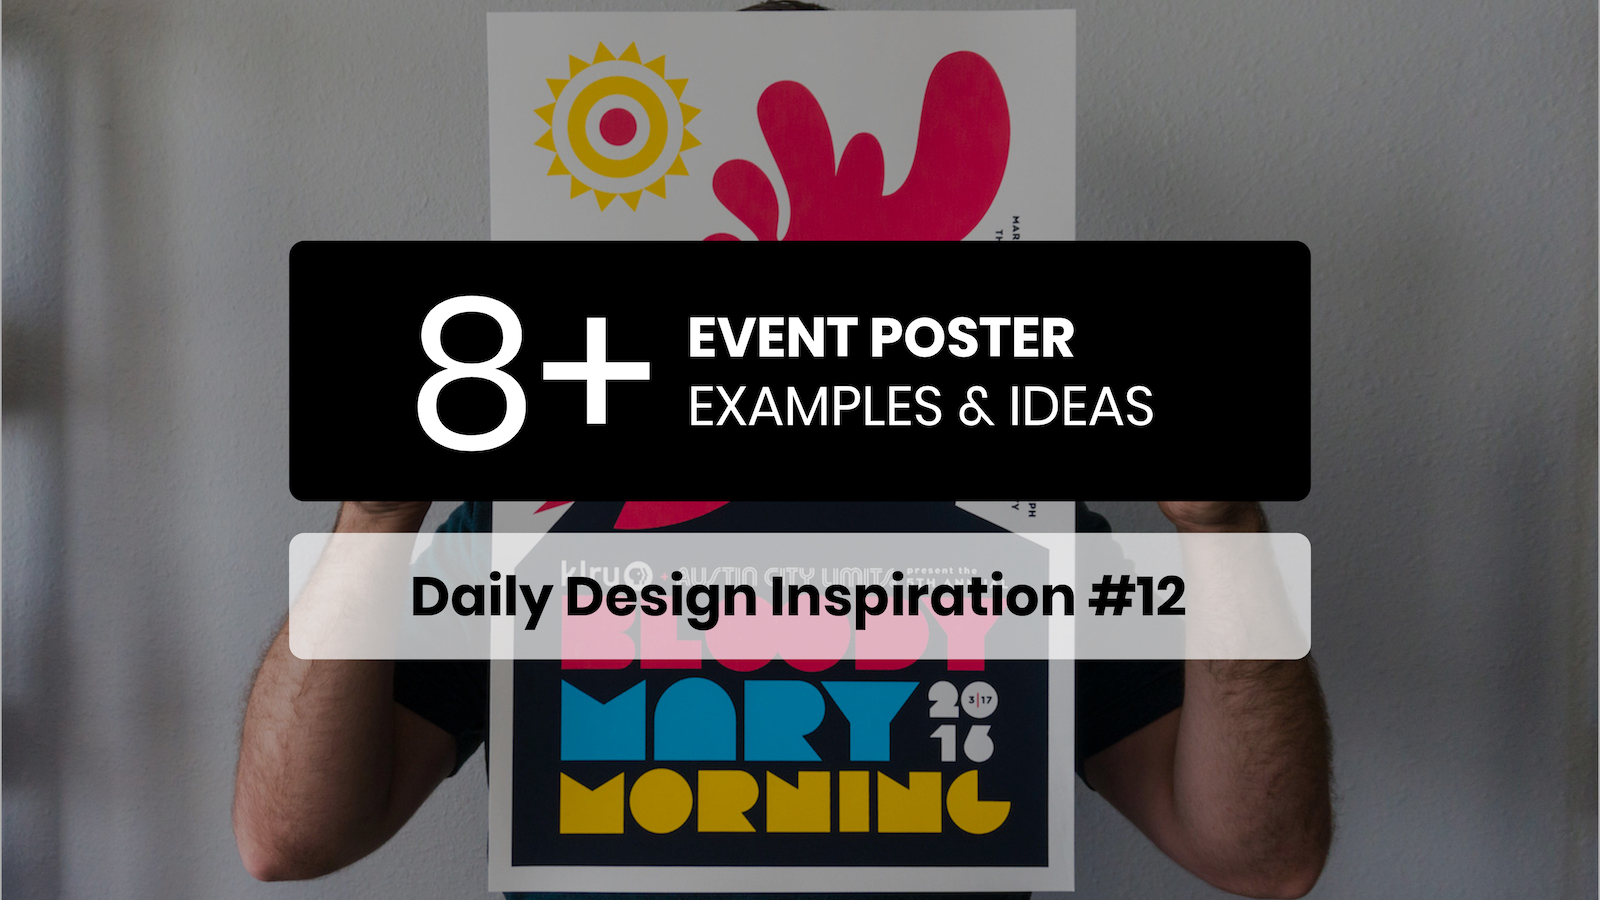 8+ Event Poster Design Examples & Templates - Daily Design Inspiration